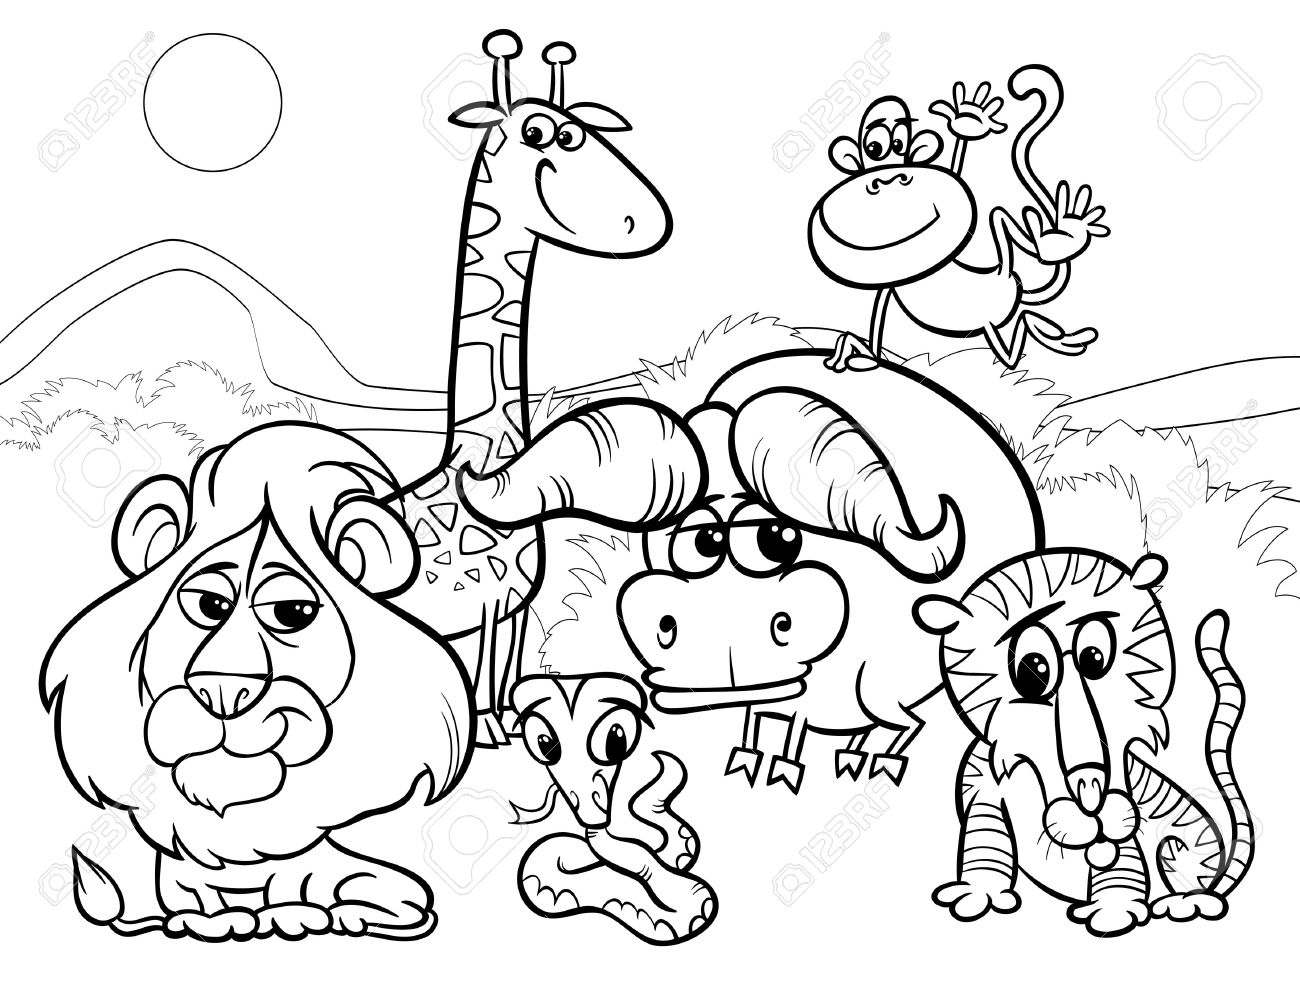 Black and white zoo clipart banner royalty free Zoo clipart black and white 8 » Clipart Station banner royalty free